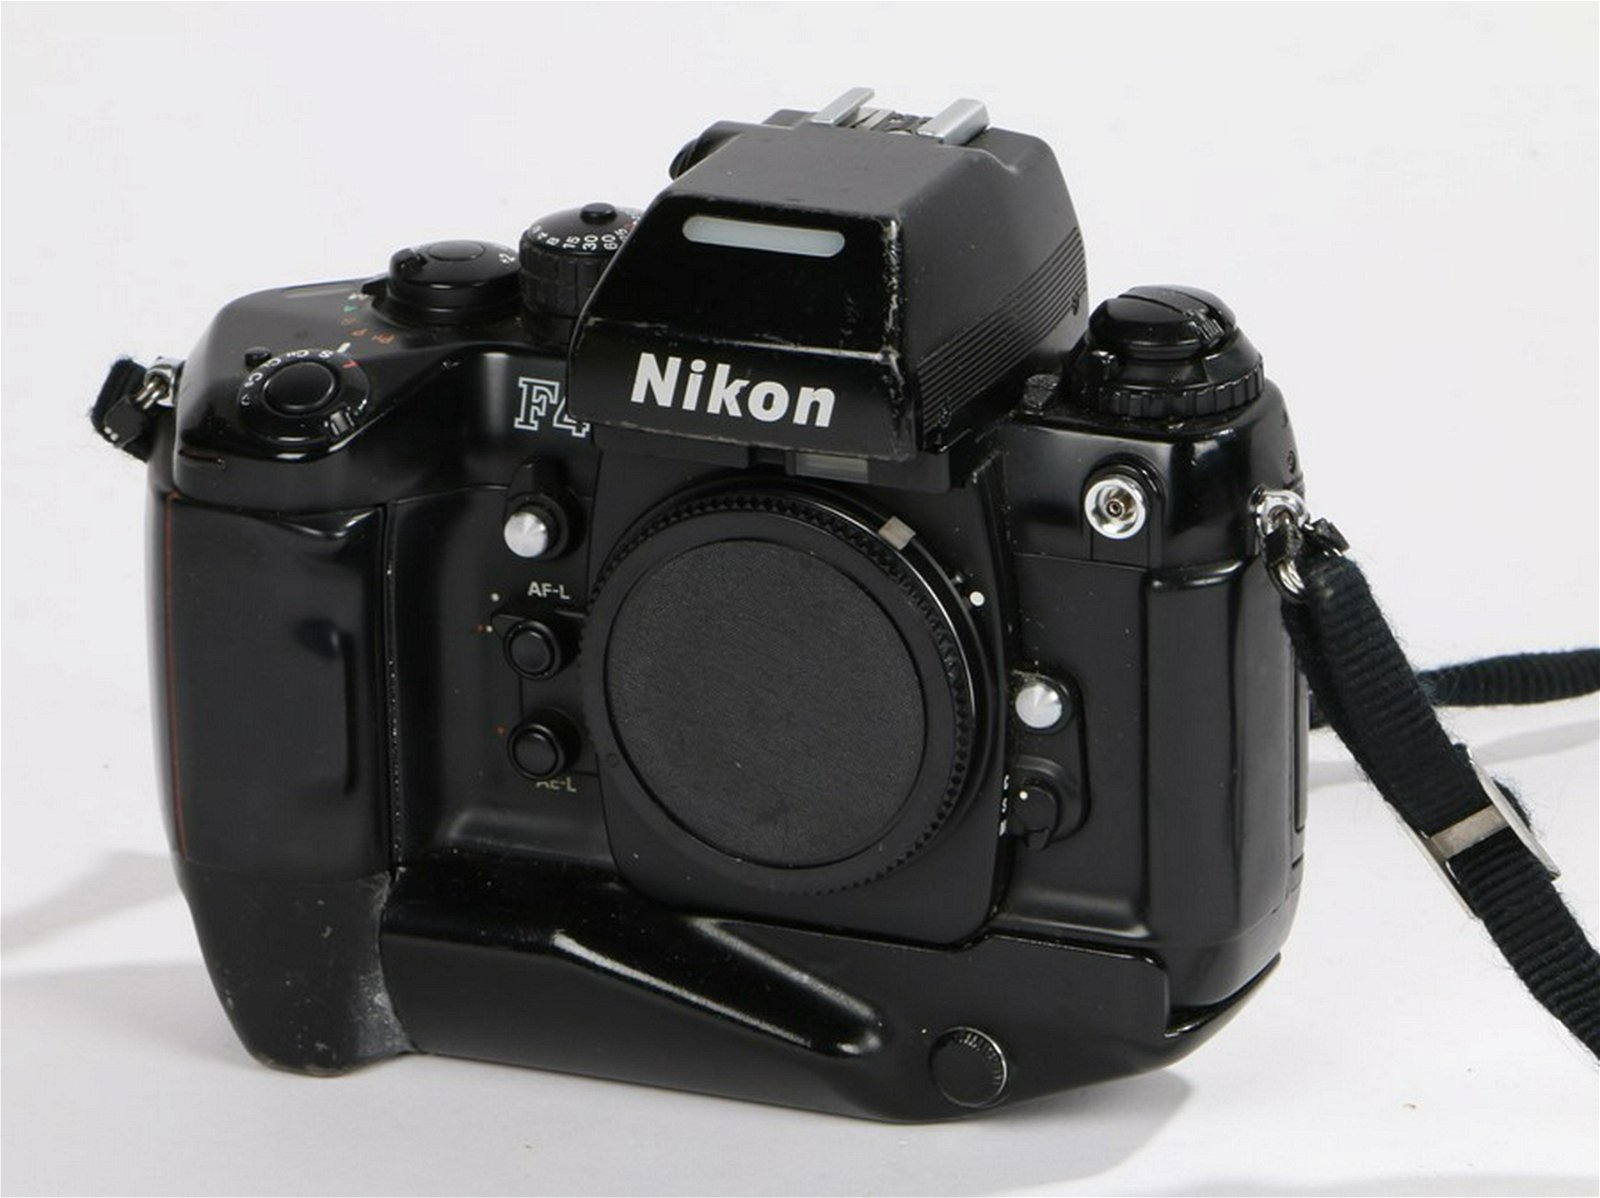 Nikon F4 camera body, No 2404904 with an attached MB-21